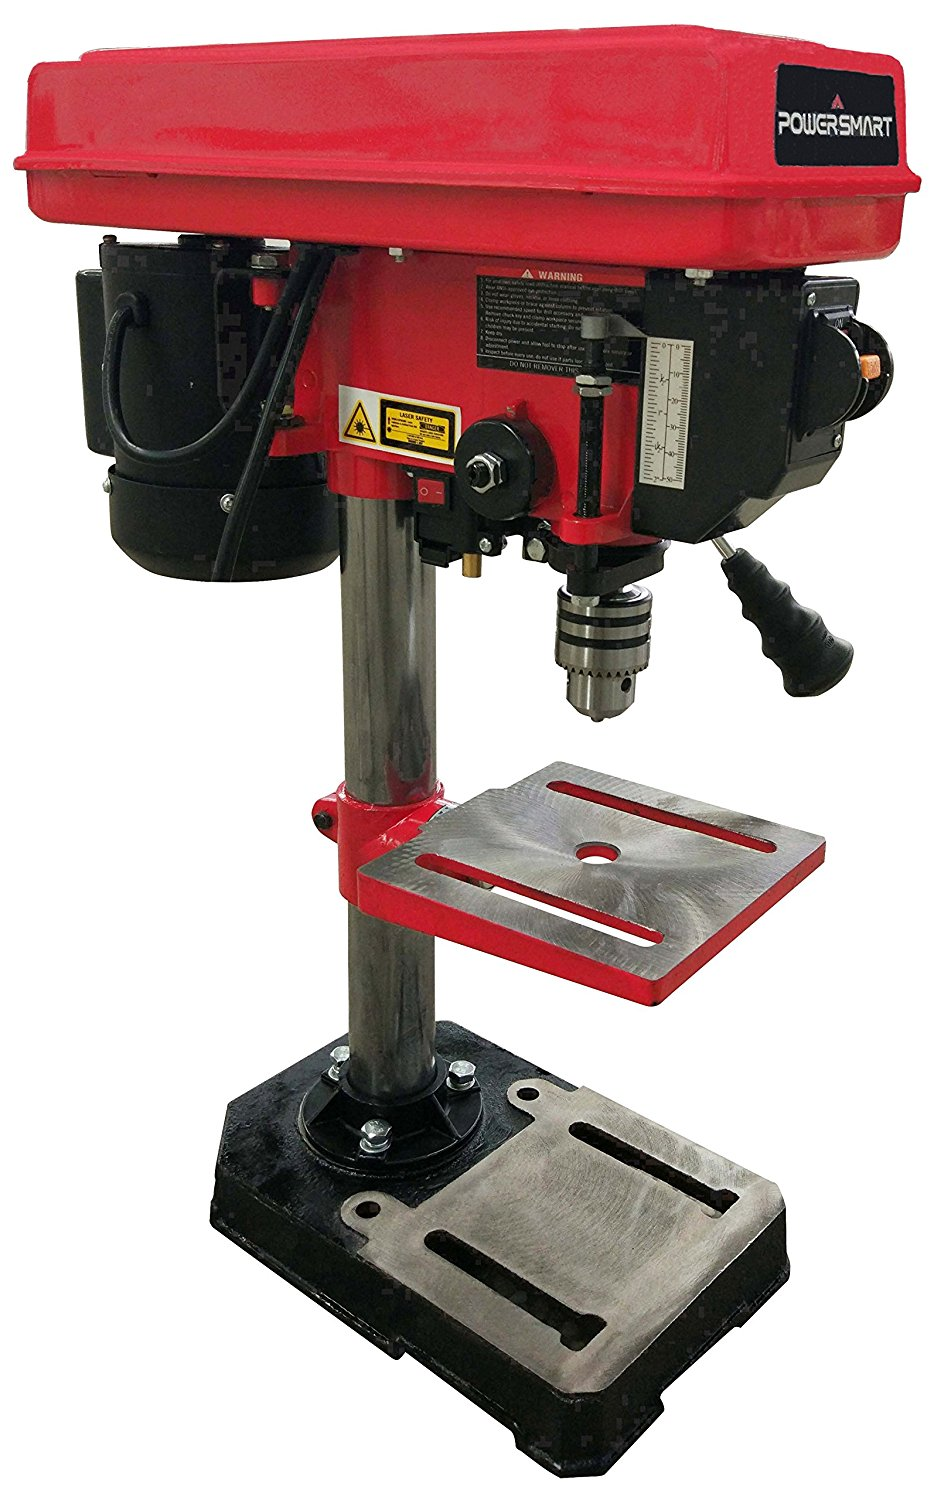 PowerSmart PS308 5-Speed Drill Press with Laser Guide, 8